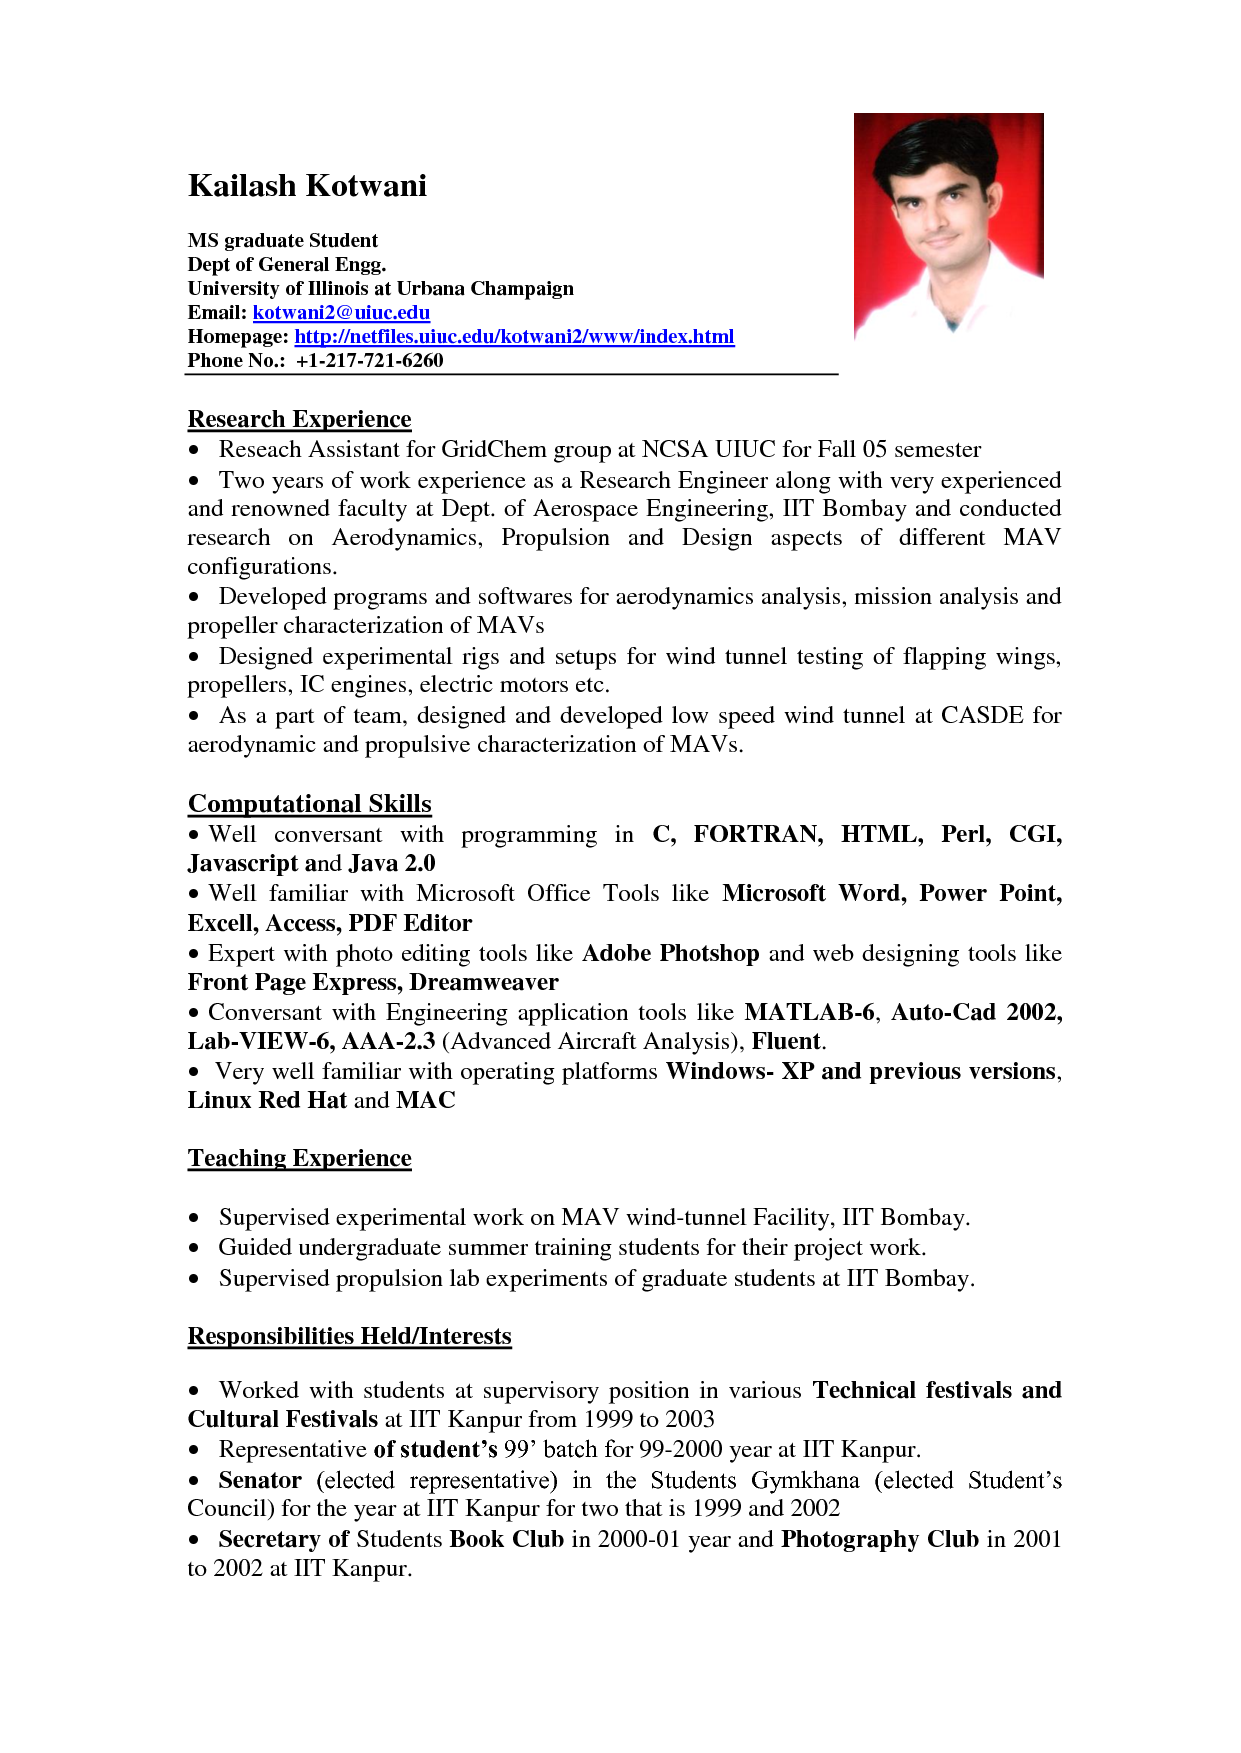 Perfect High School Student Resume Examples No Work Experience No Work Experience  Resume Content. How To Write A Resume Resume . With Resume Examples For Jobs With Experience